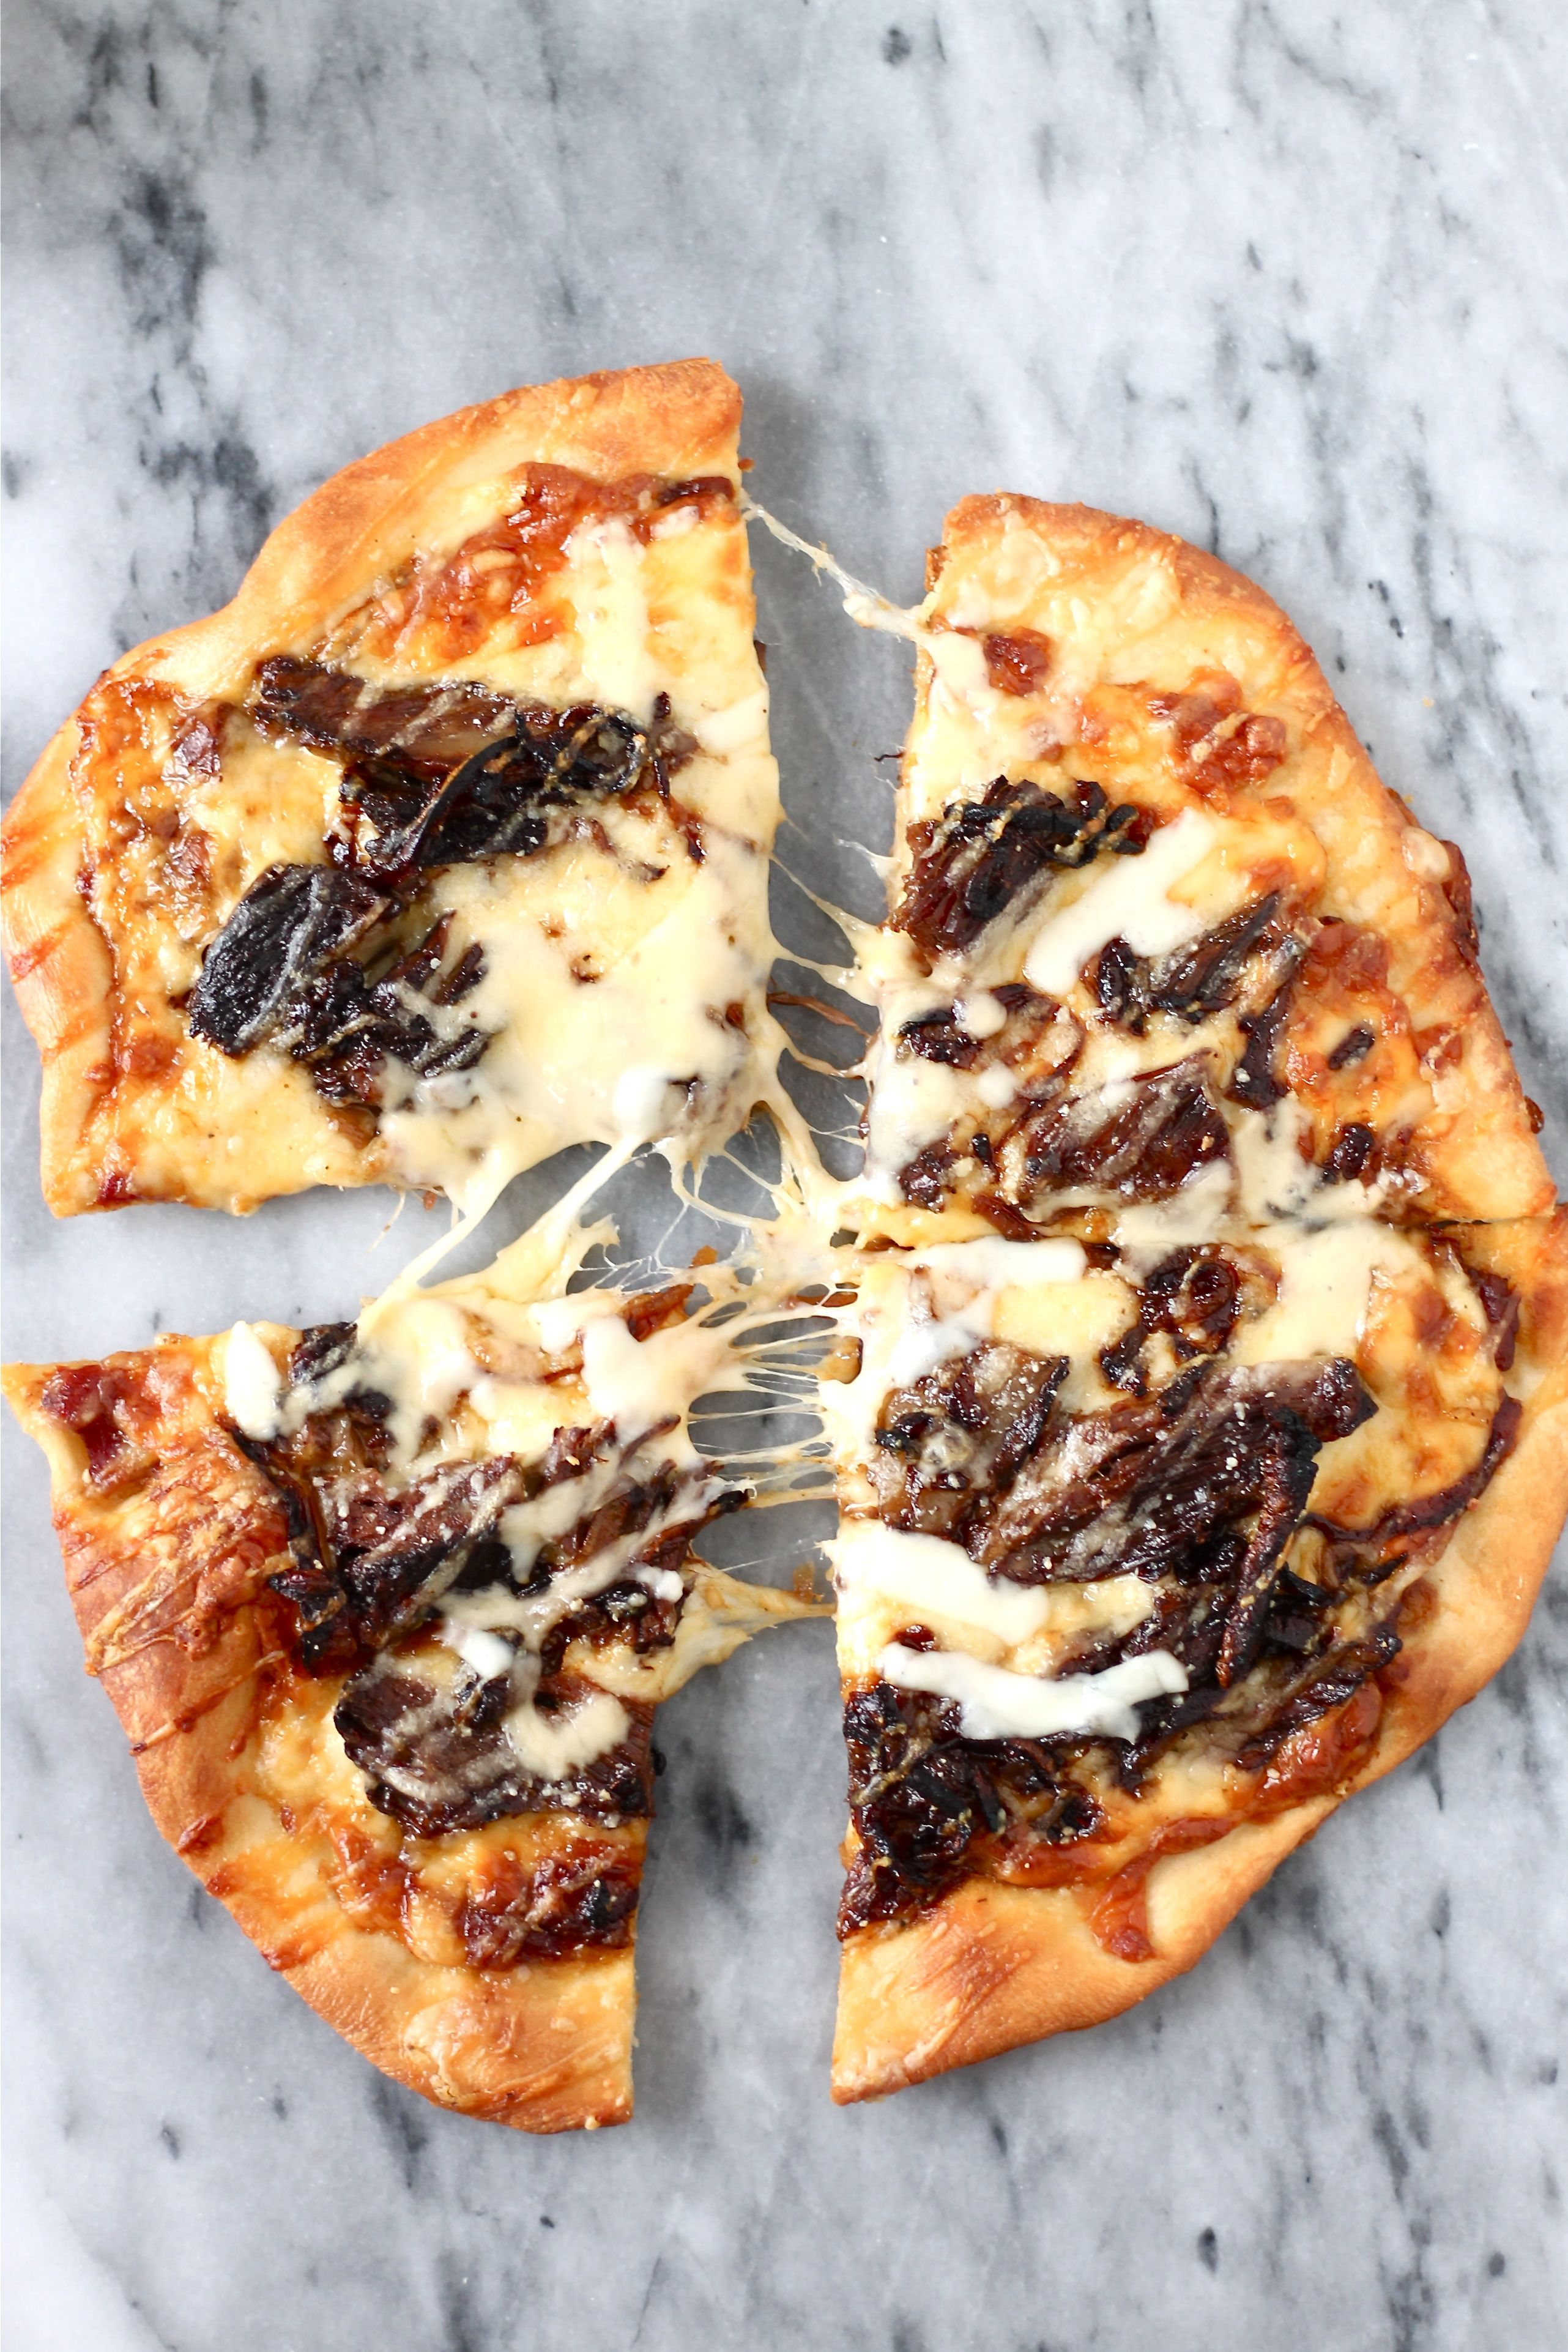 Short rib pizza with mozzarella, caramelized onions, and a smoked gouda cream sauce.